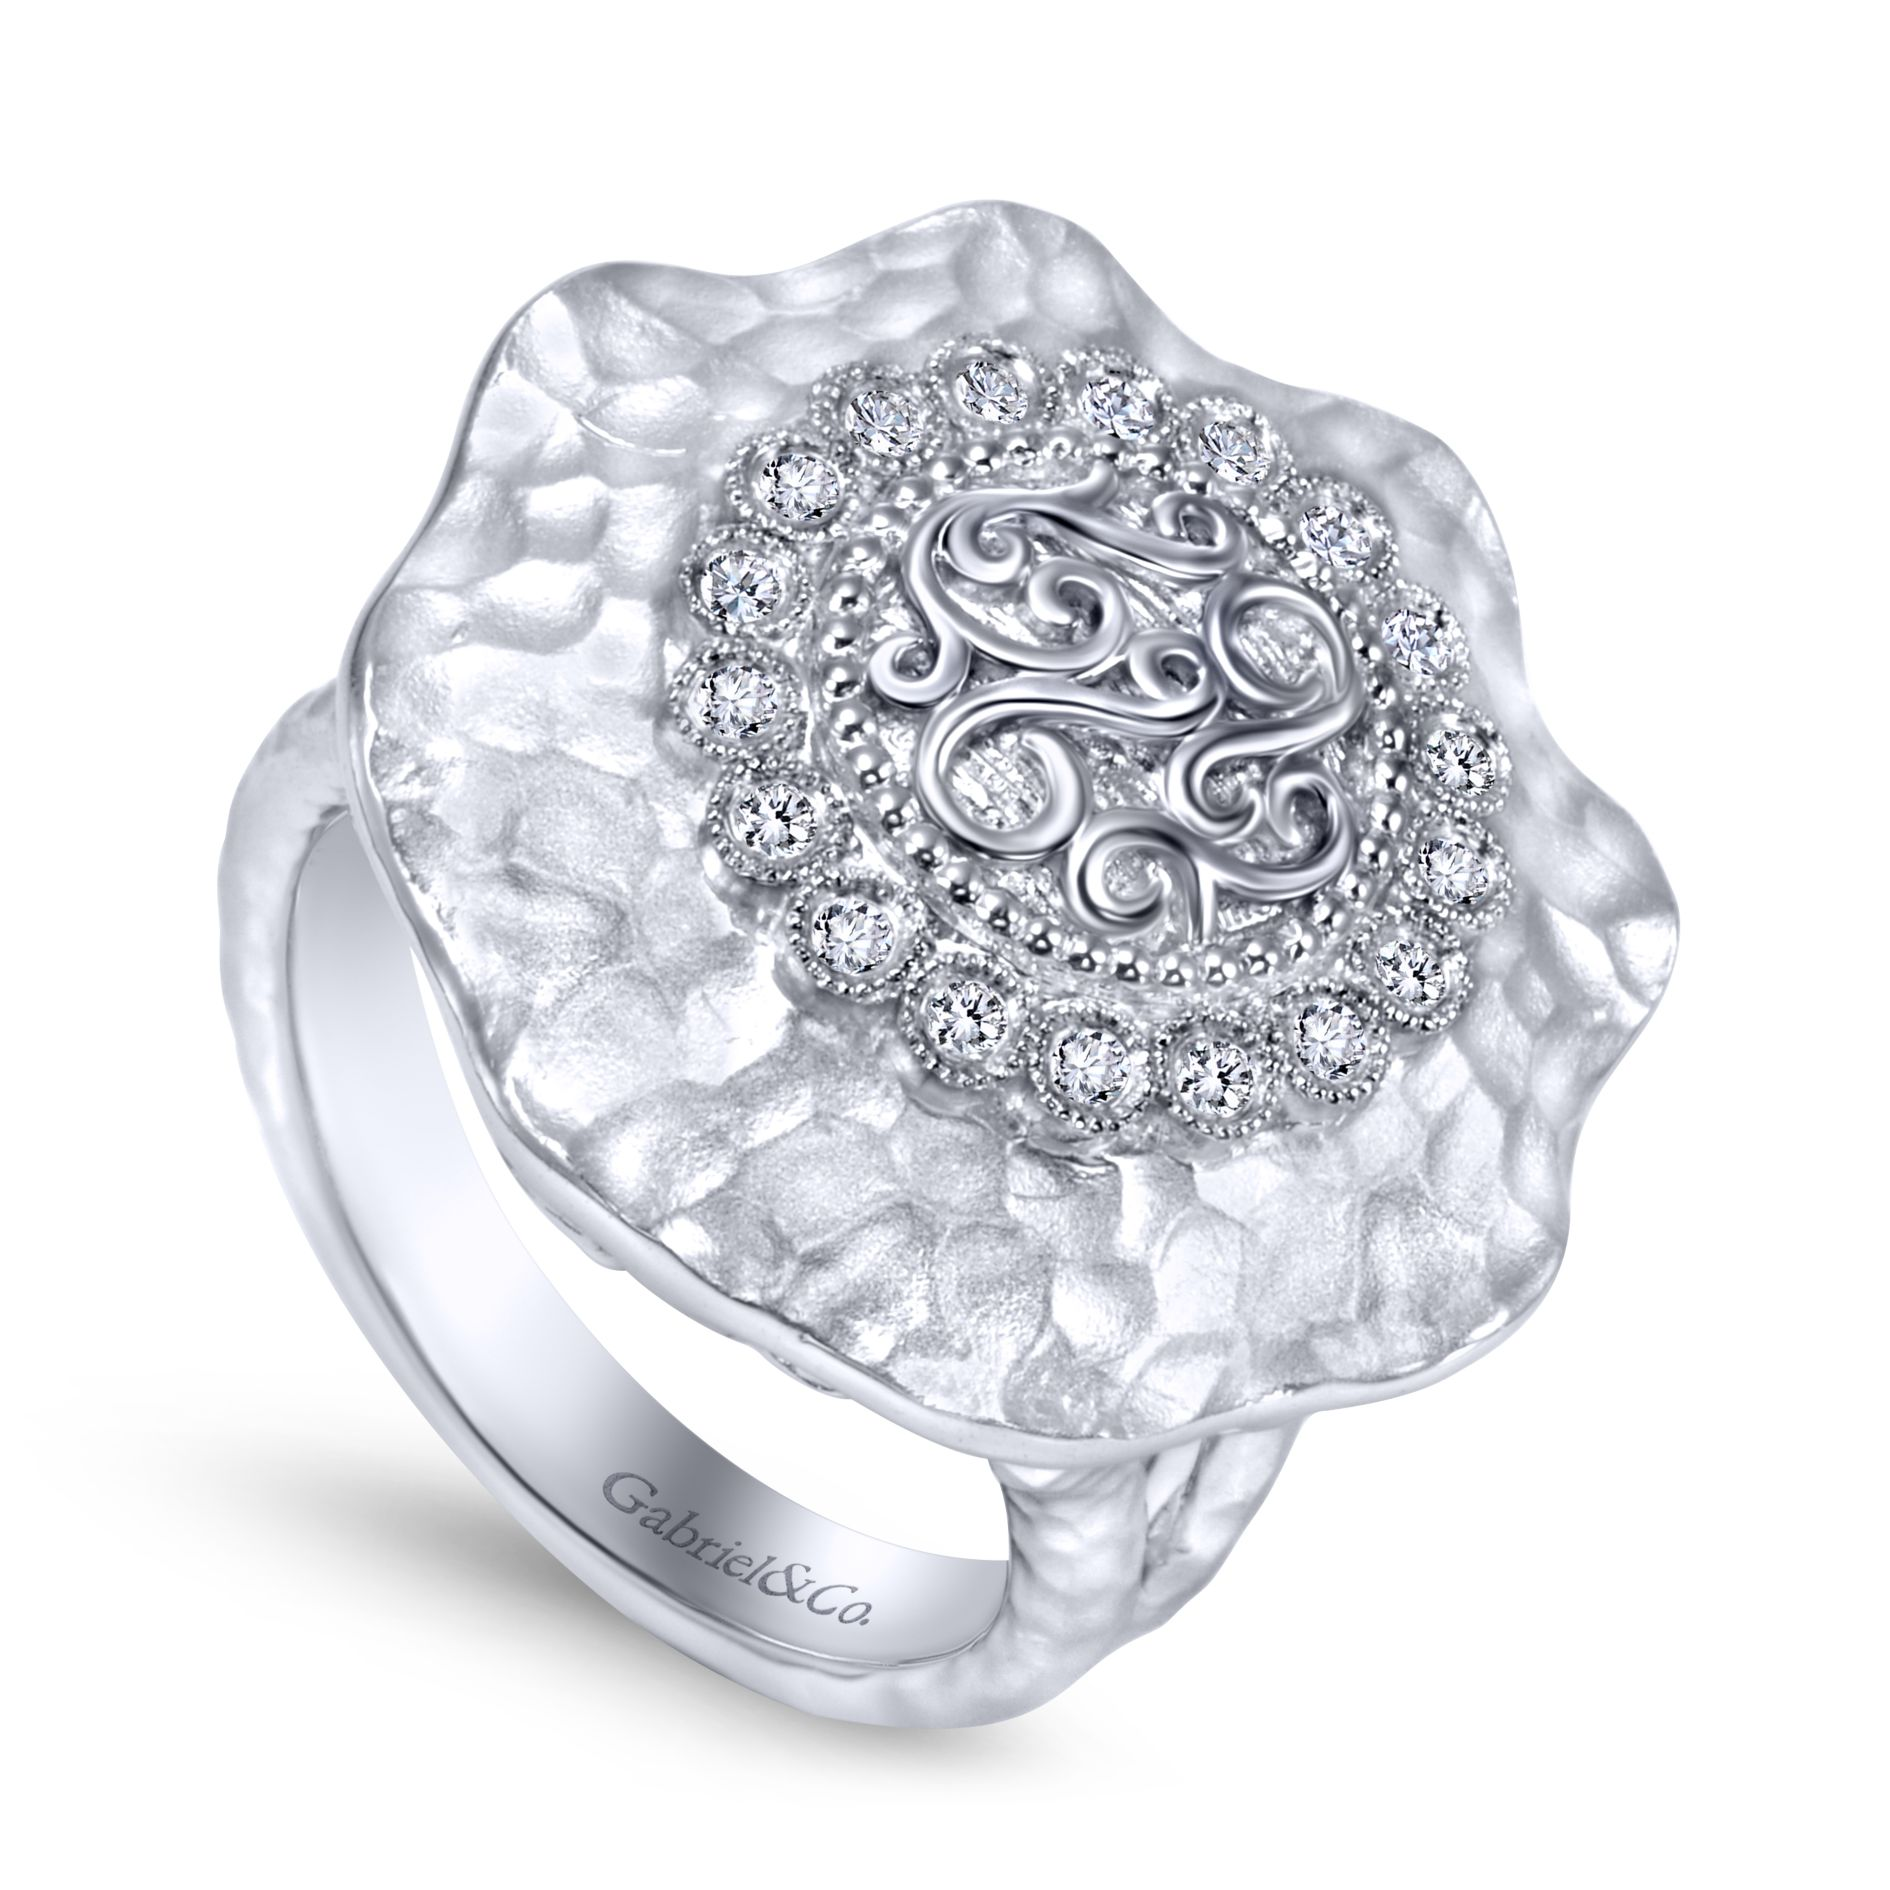 Rings - SILVER FASHION DIAMOND LADIES RING - image #3